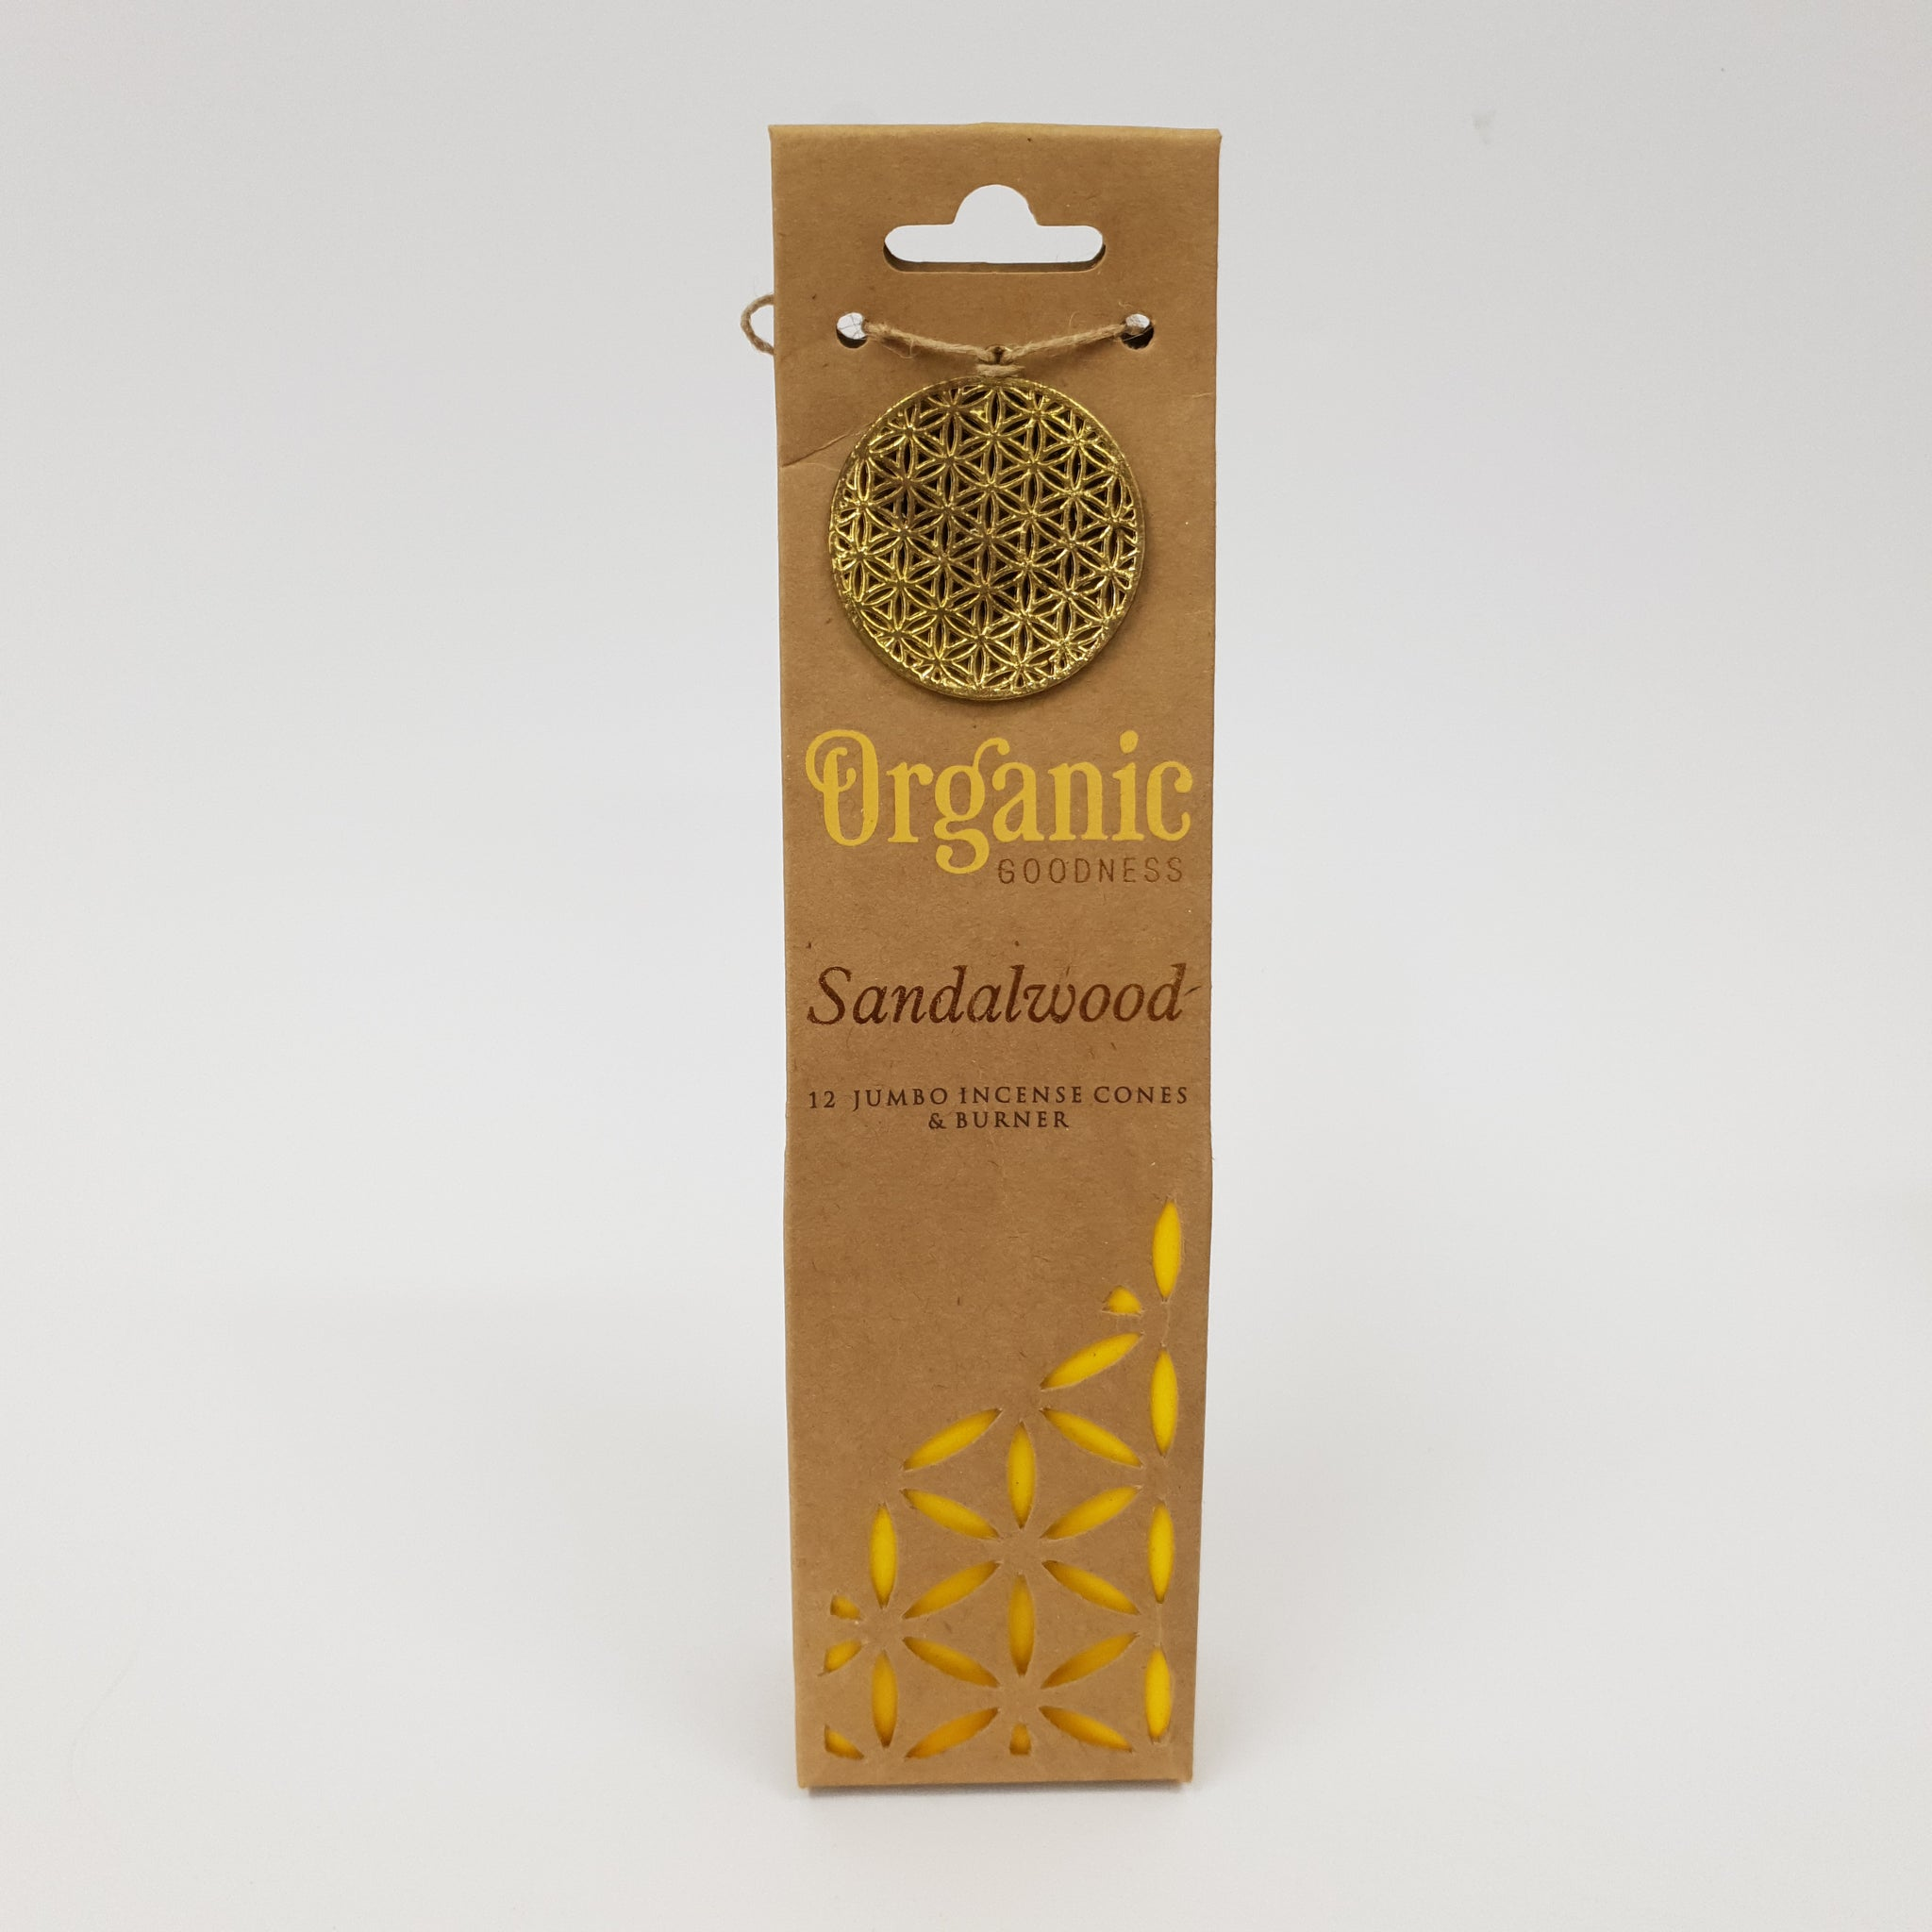 Sandalwood - Organic Goodness Masala Incense Cones